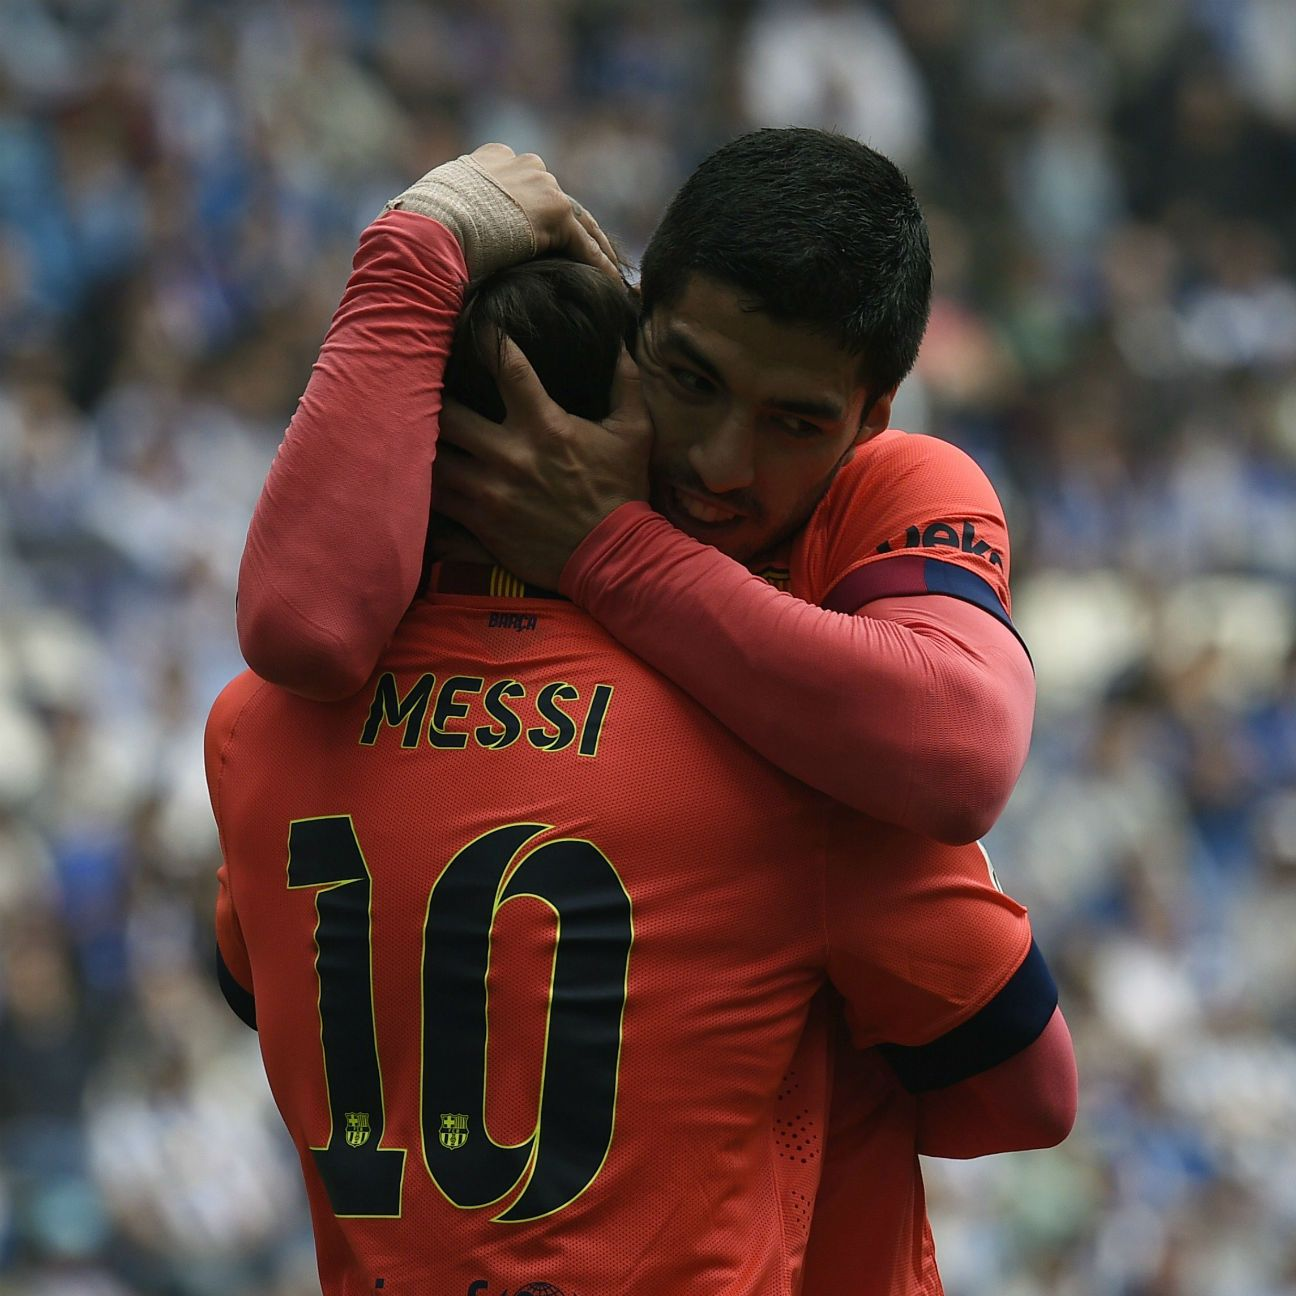 Luis Suarez and Lionel Messi helped lead yet another dominating effort in attack for Barcelona.